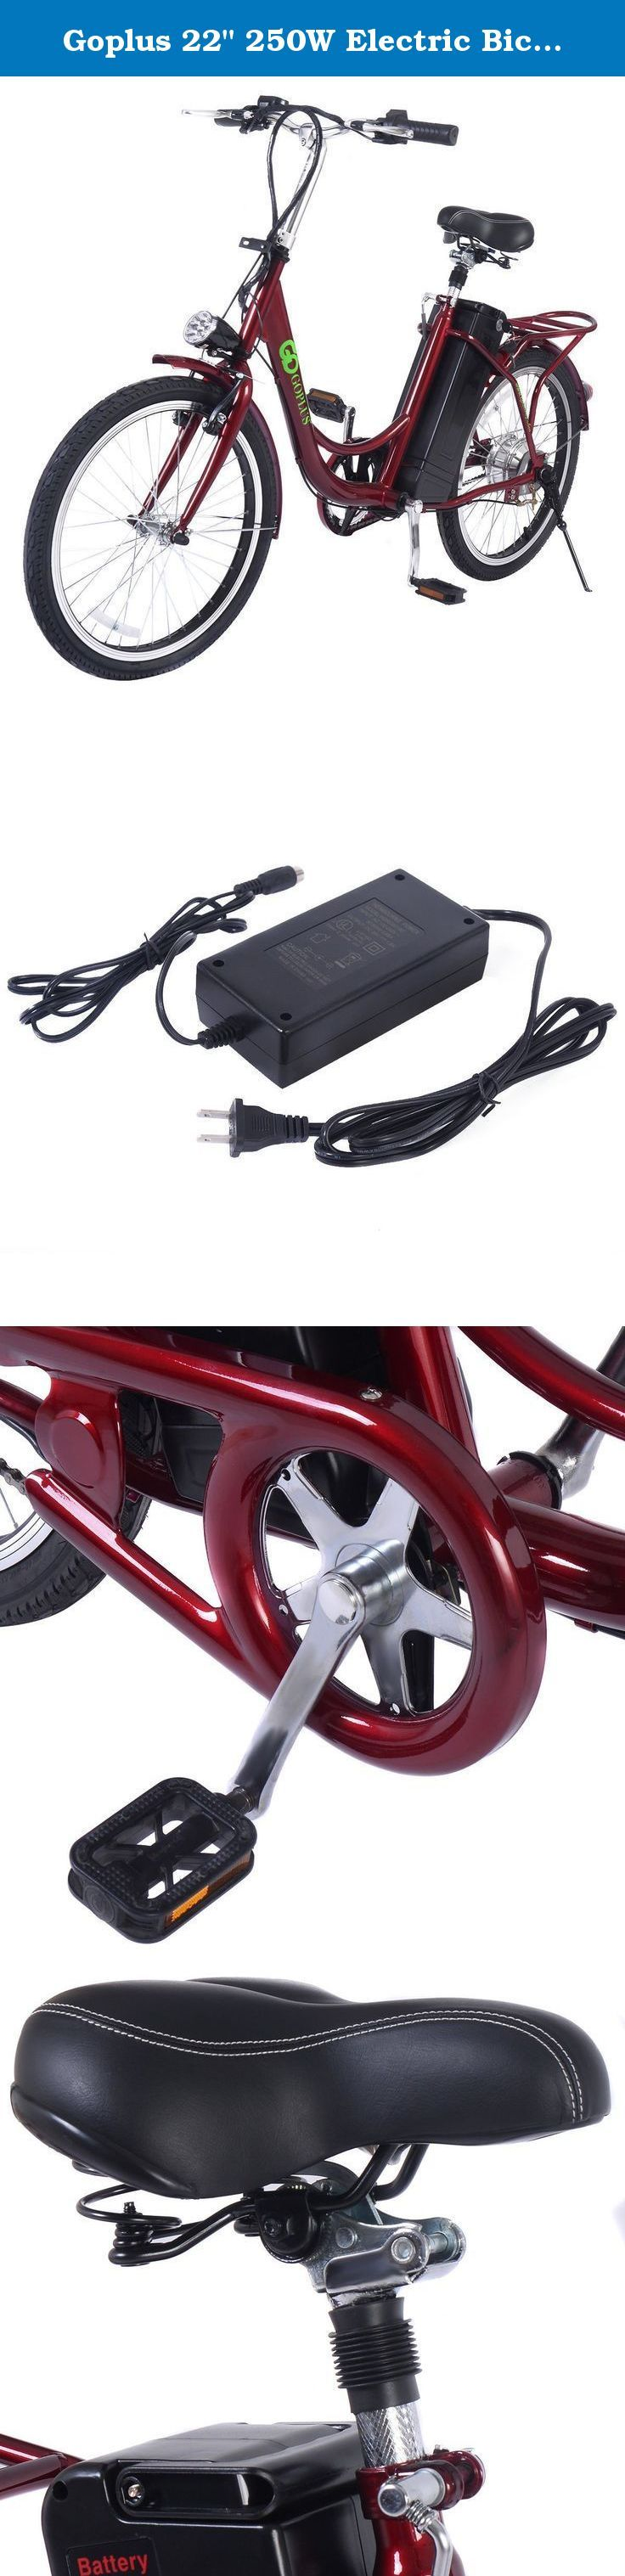 """Goplus 22"""" 250W Electric Bicycle Mountain Bike 36V Lithium Battery (Red). Specification Frame: Iron Frame+ Aluminum Alloy Hub Rear Motor: 250W Battery: 36V8AH Lithium Battery Charging Time: 5-6 Hours Max Speed: 35km/H Max Loading: 350lbs Range Per Charge: 25-35km With Pedal Assist Brake: Front V Brake, Rear Expansion Brake Weight:75lbs Charger Input: 100-240V,50/60HZ,18A Charger Output: 42V,1.6A AMA Brand Motor, Mobil Brand Battery Charger Package Includes: 1 X 22"""" Bike, 1xinstruction ."""